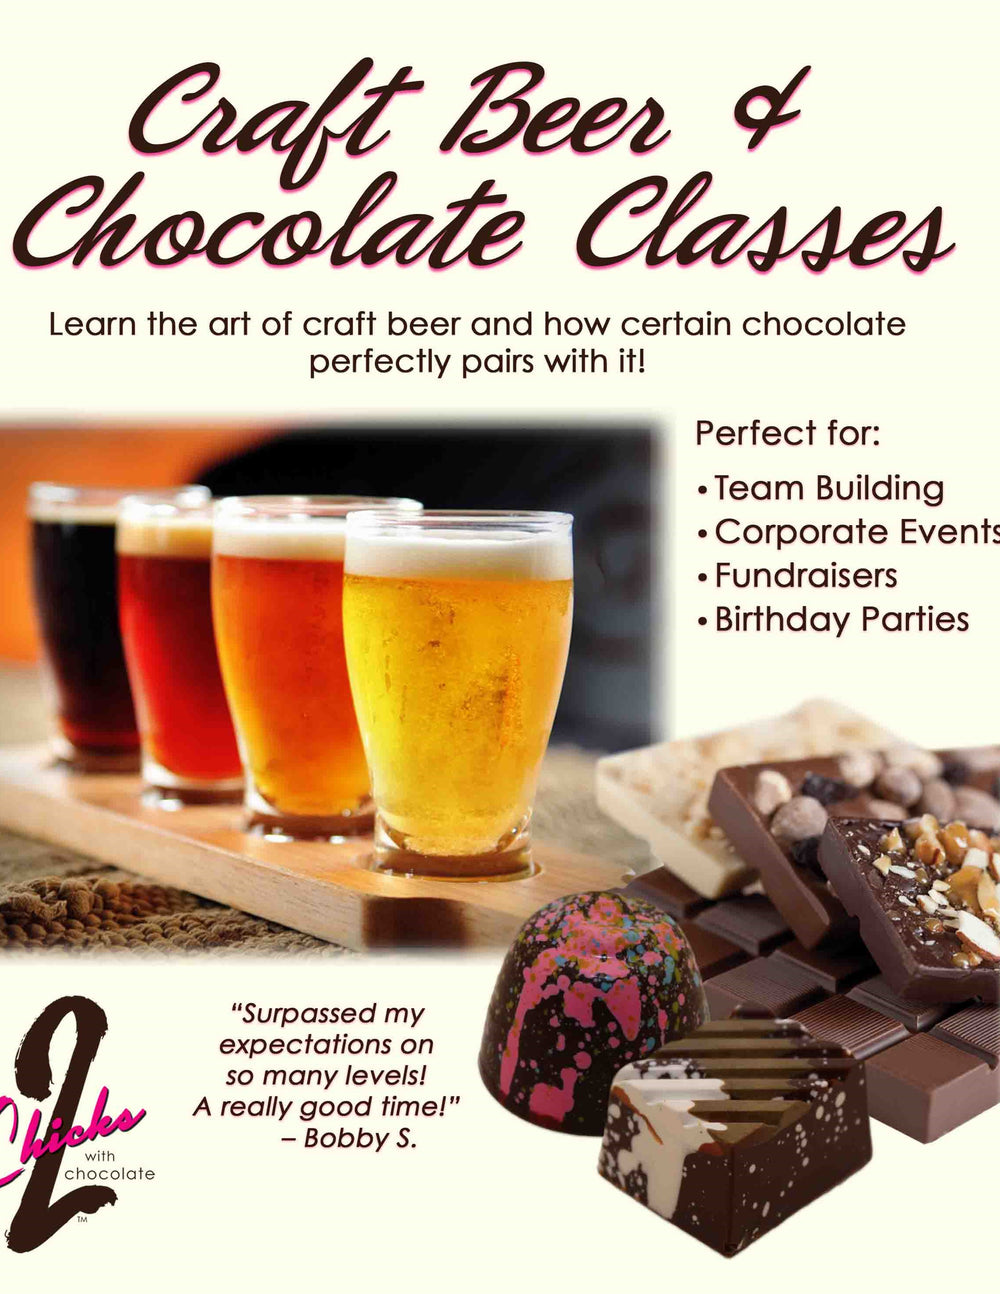 Craft Beer & Chocolate Class - 2 Chicks with Chocolate